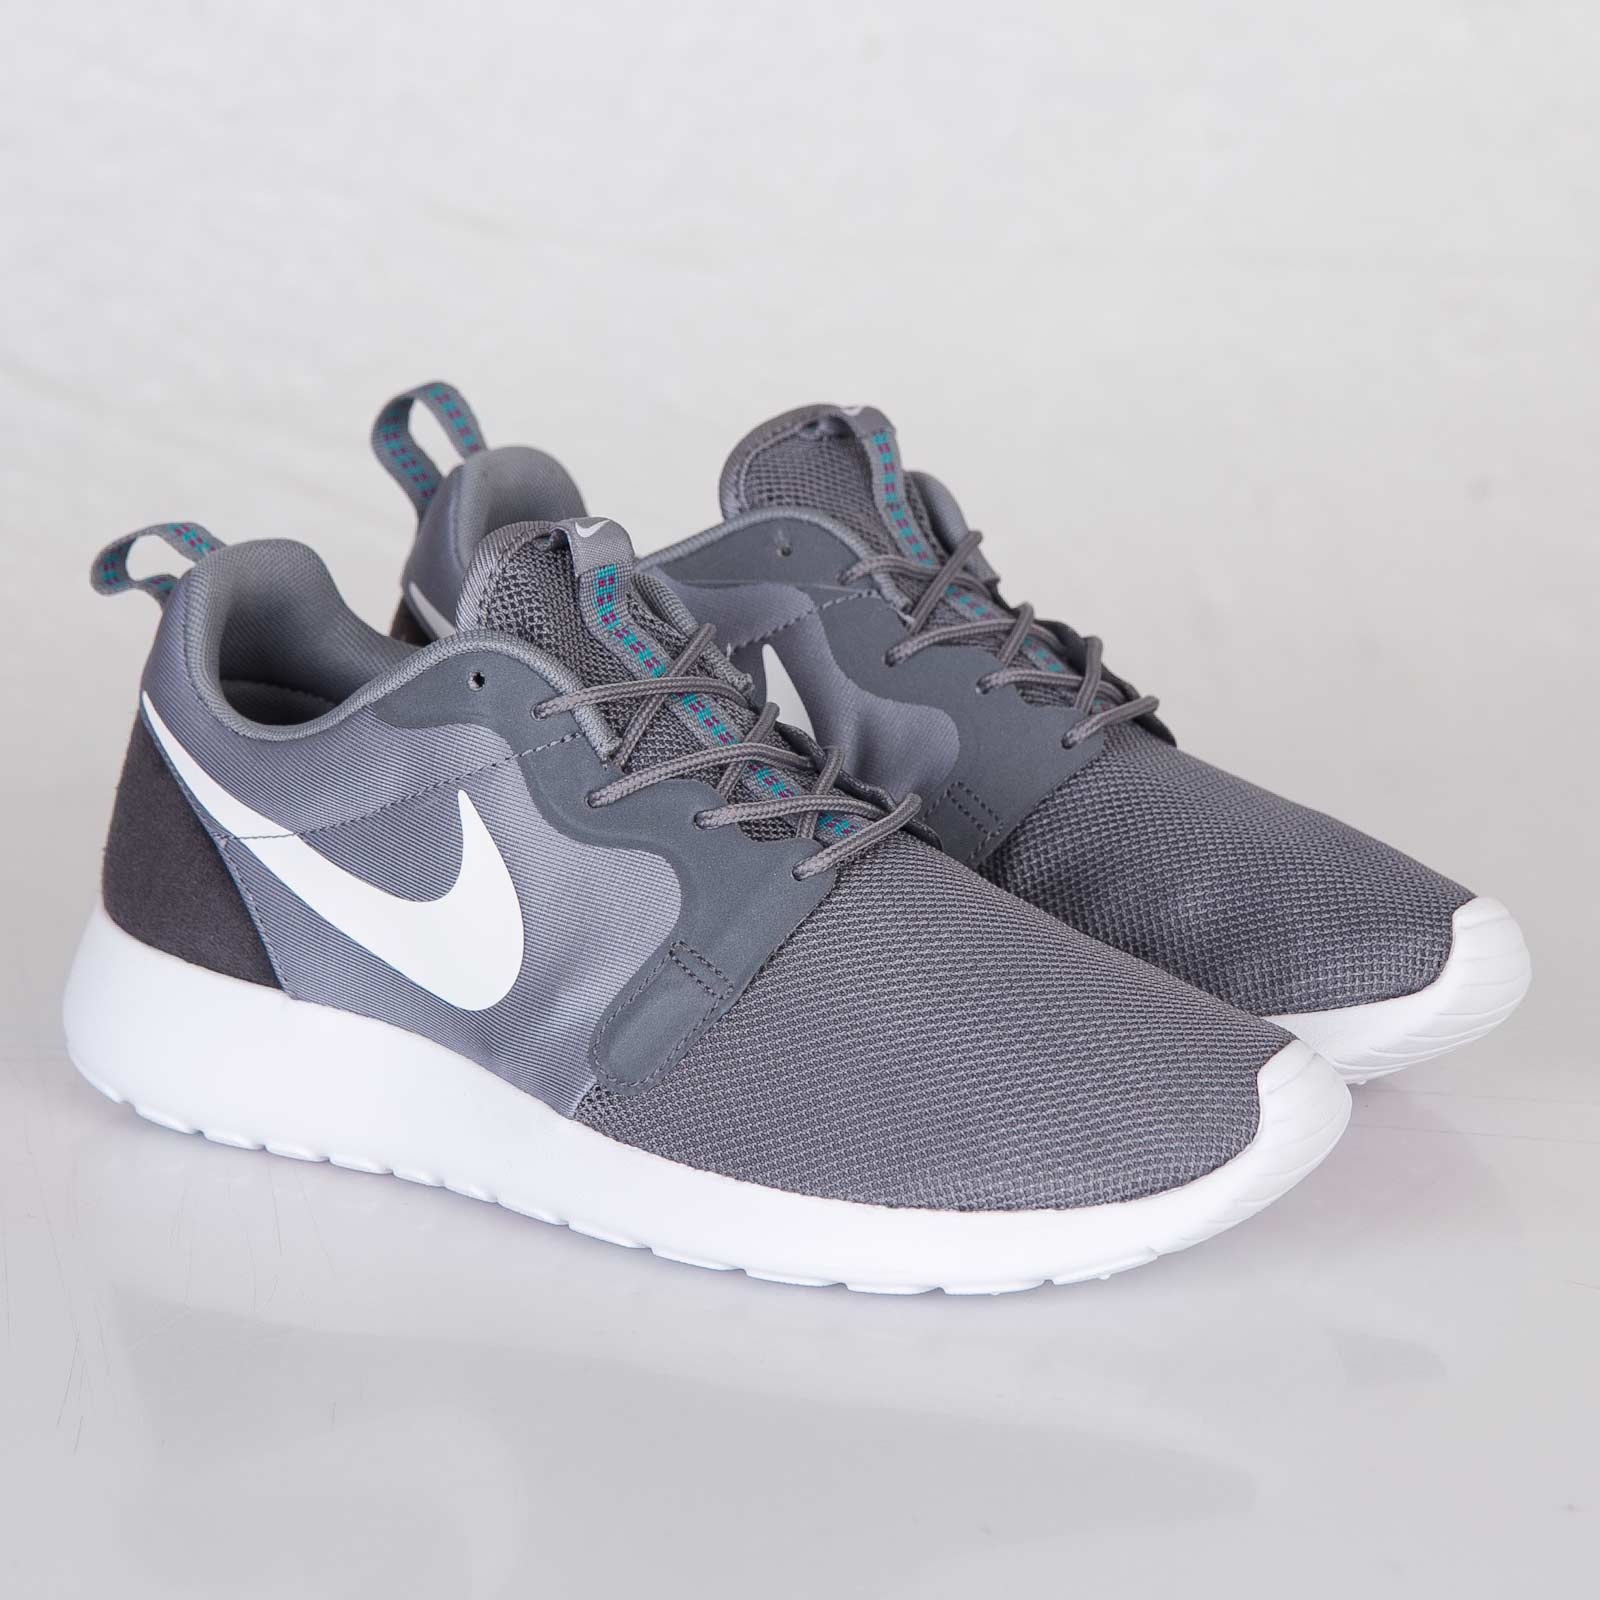 afc342cd2bba Nike Roshe Run Hyperfuse - 636220-001 - Sneakersnstuff